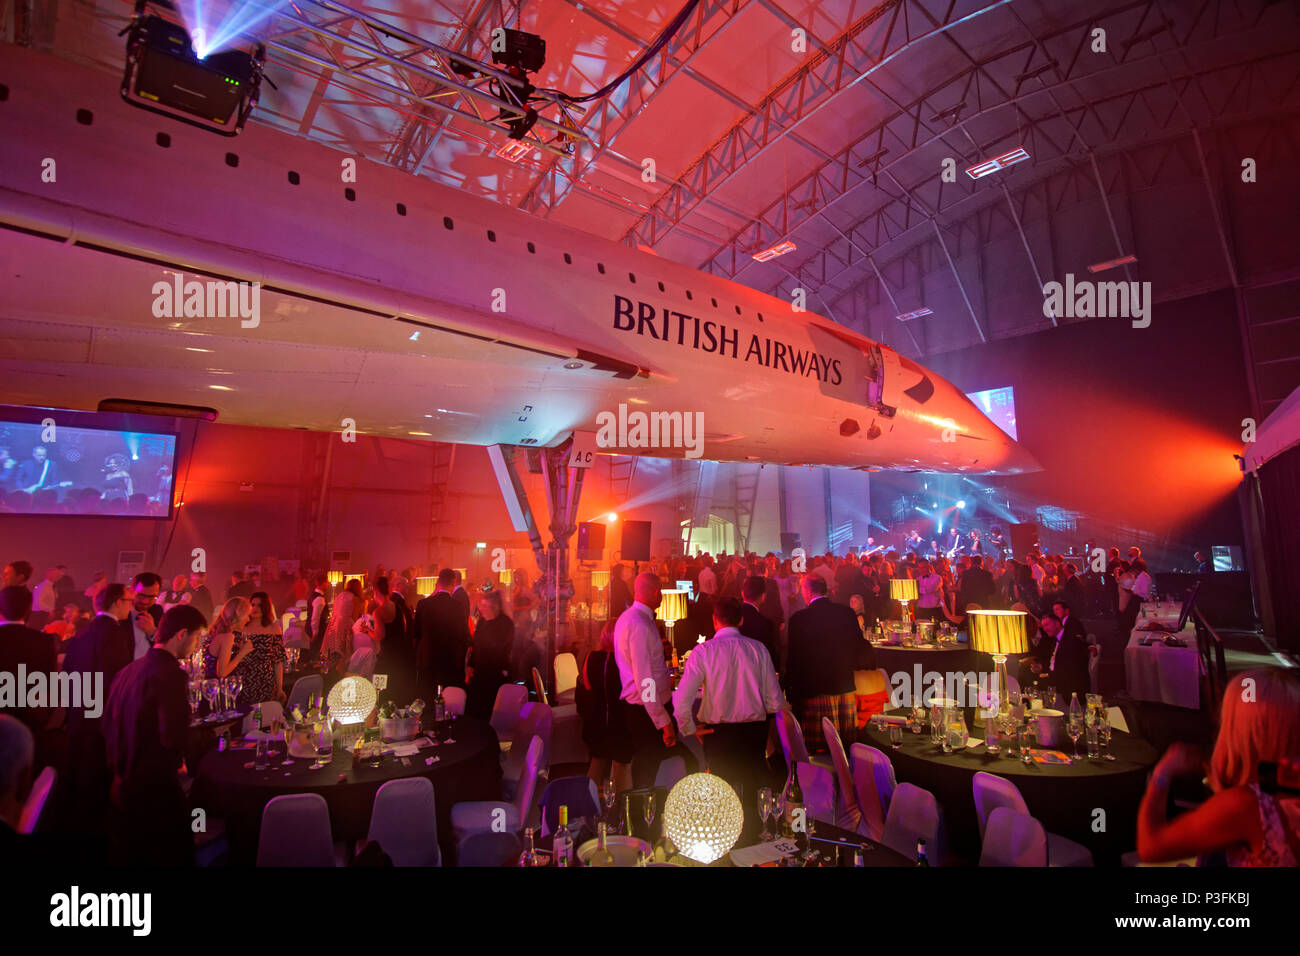 The Concorde suite at Manchester Airport's viewing park at Ringway, Manchester, Greater Manchester, England, UK. - Stock Image